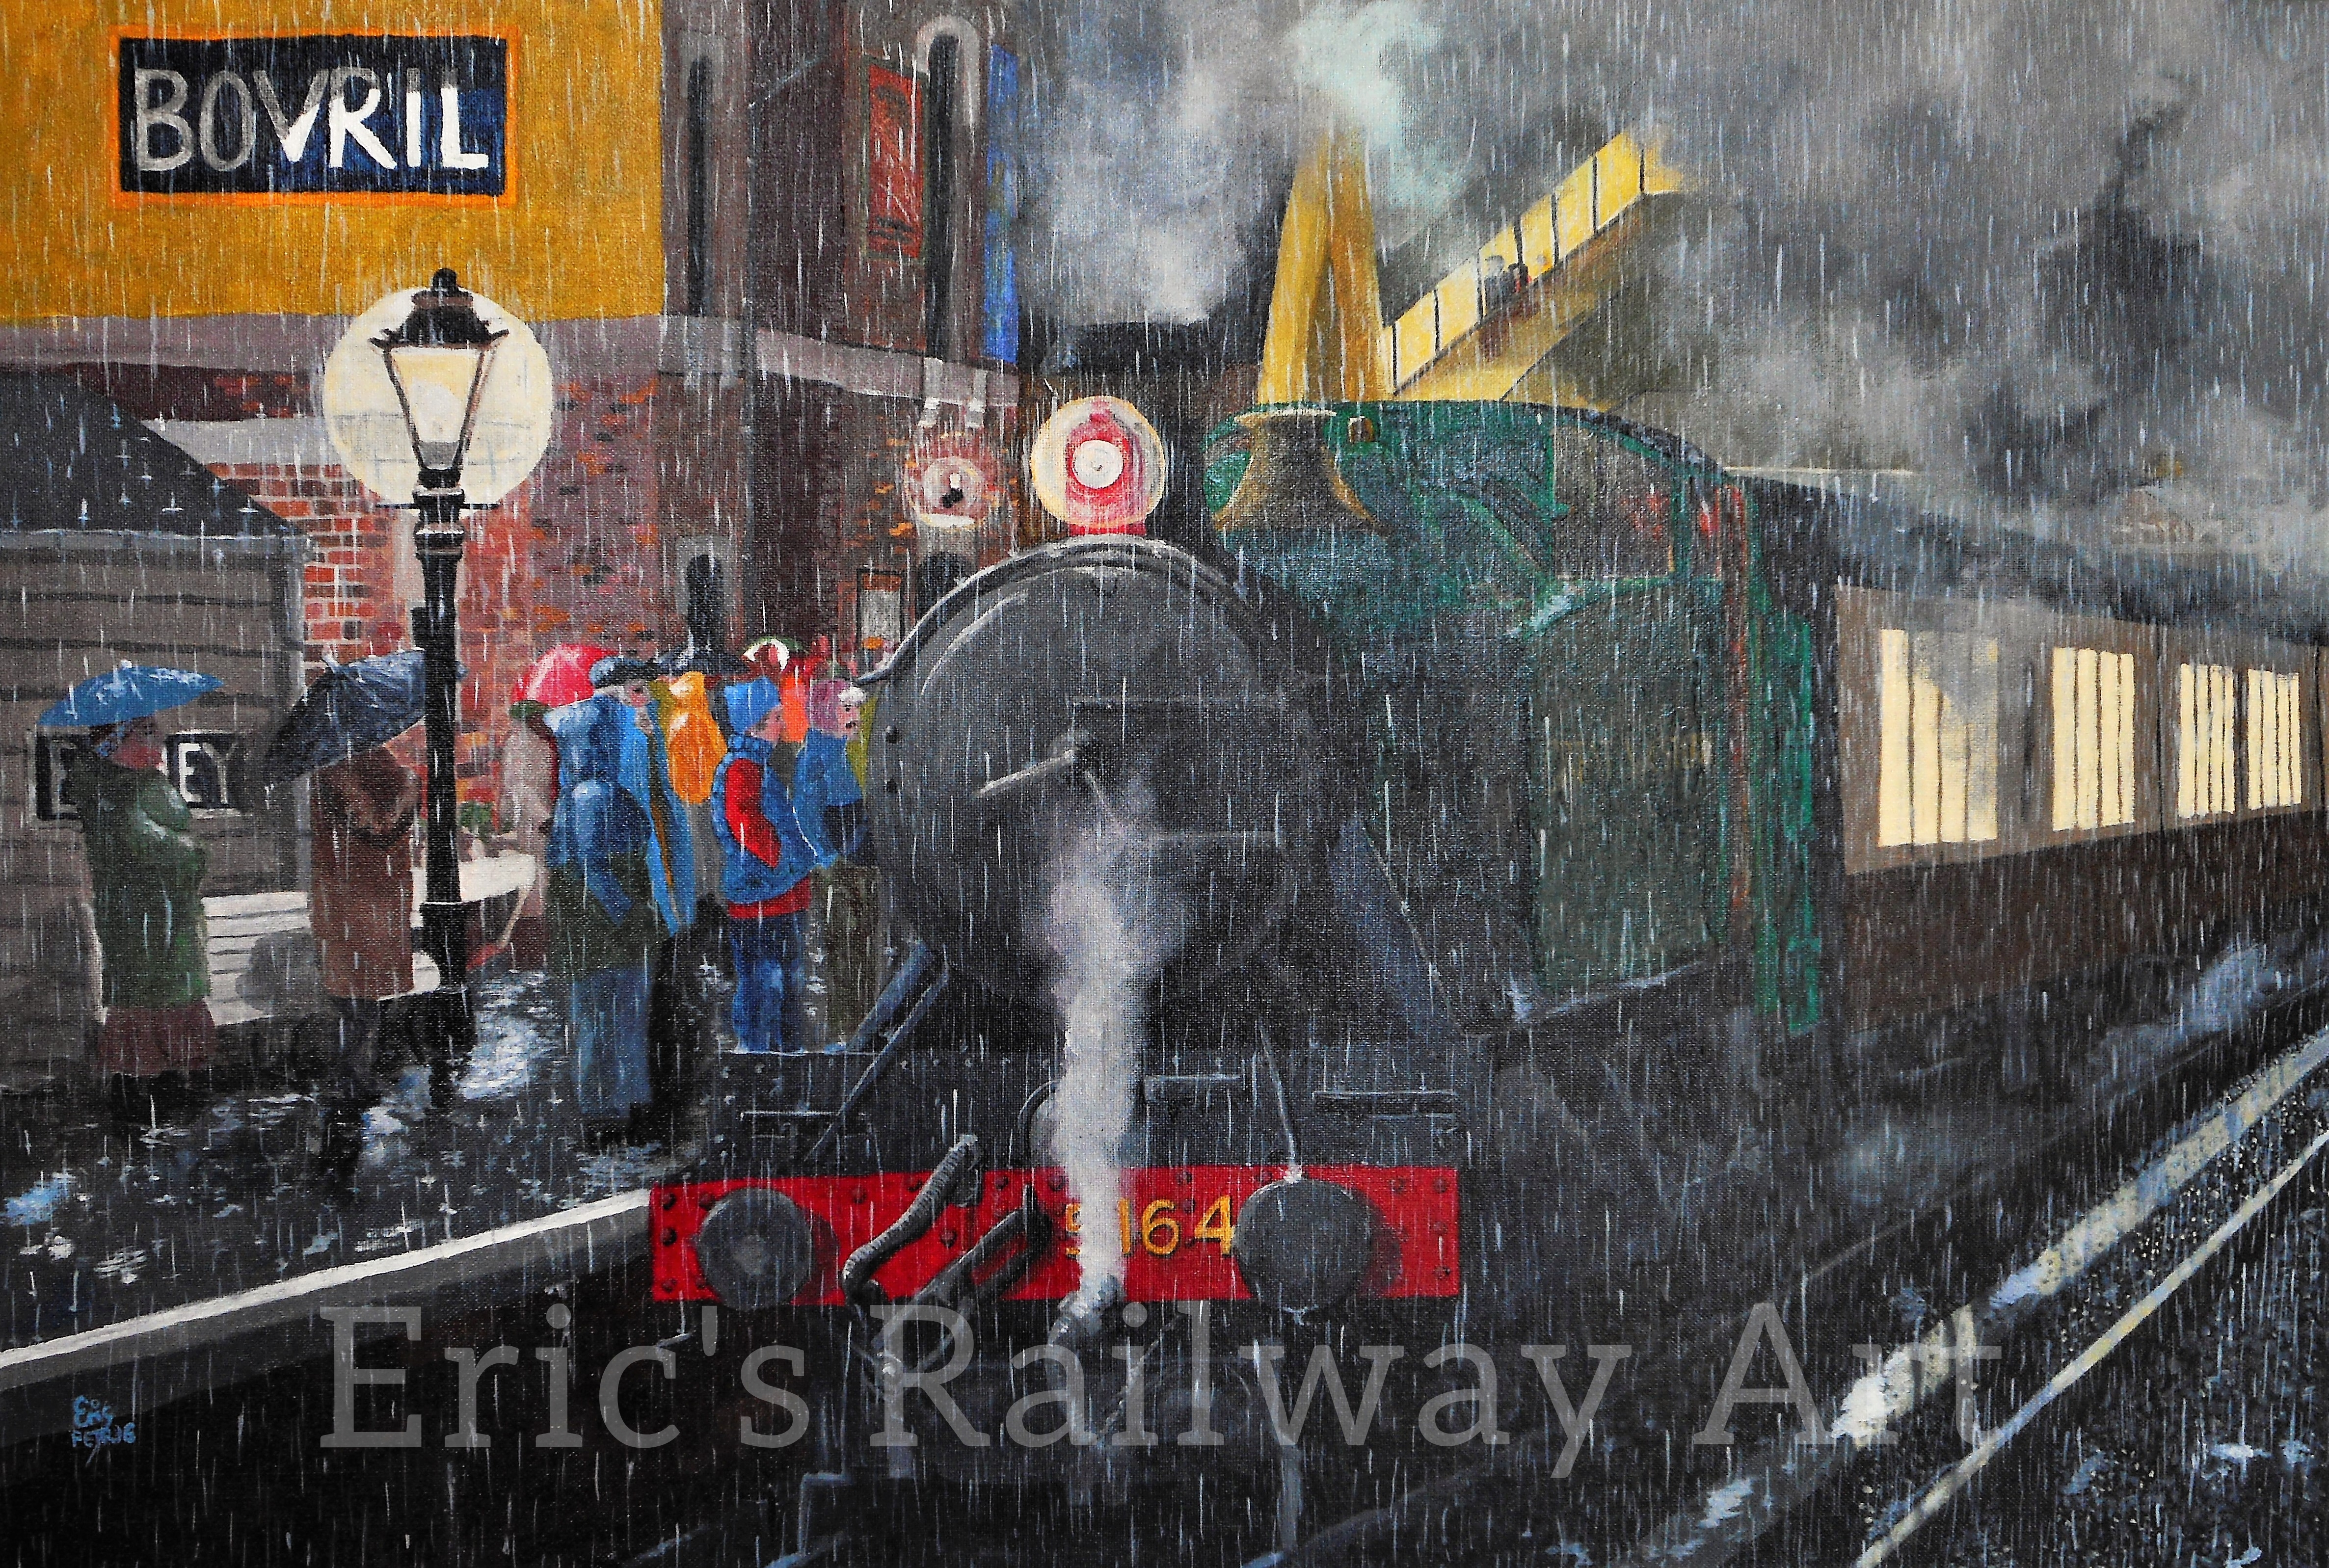 Eric's Railway Art - Bewdley in the Rain